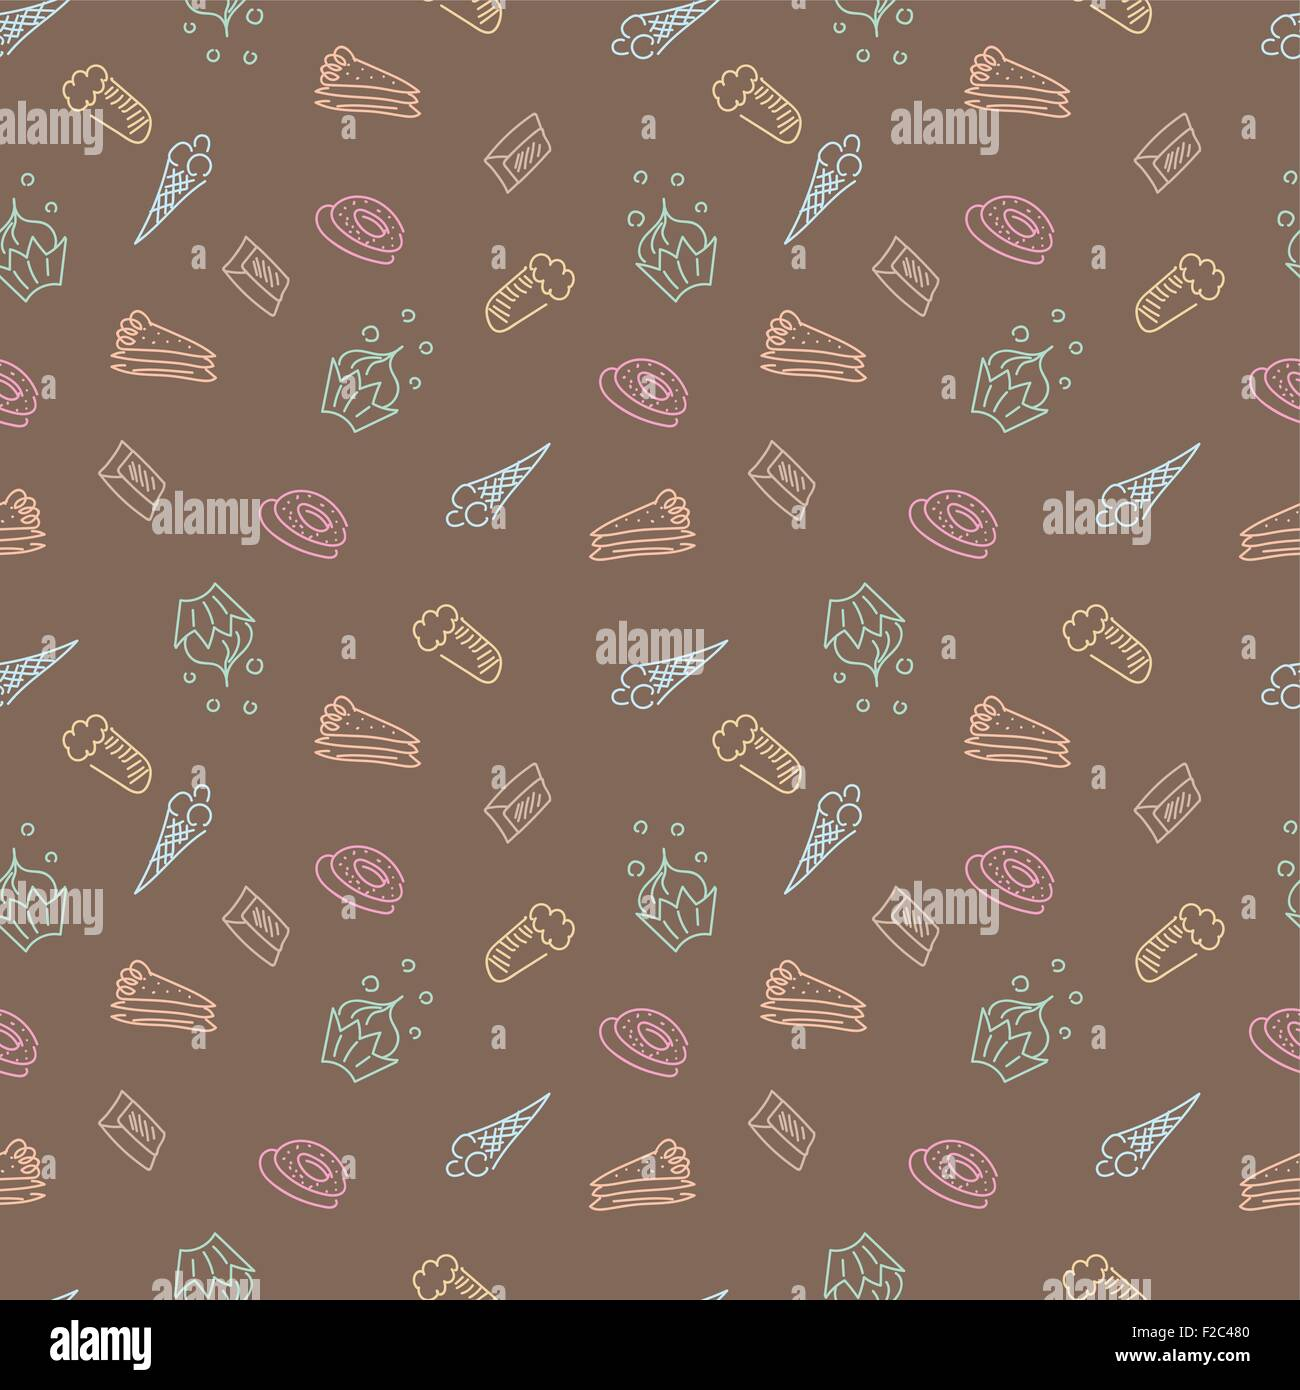 Vector Background With Cakes Sweets Ice Cream For Menu Design